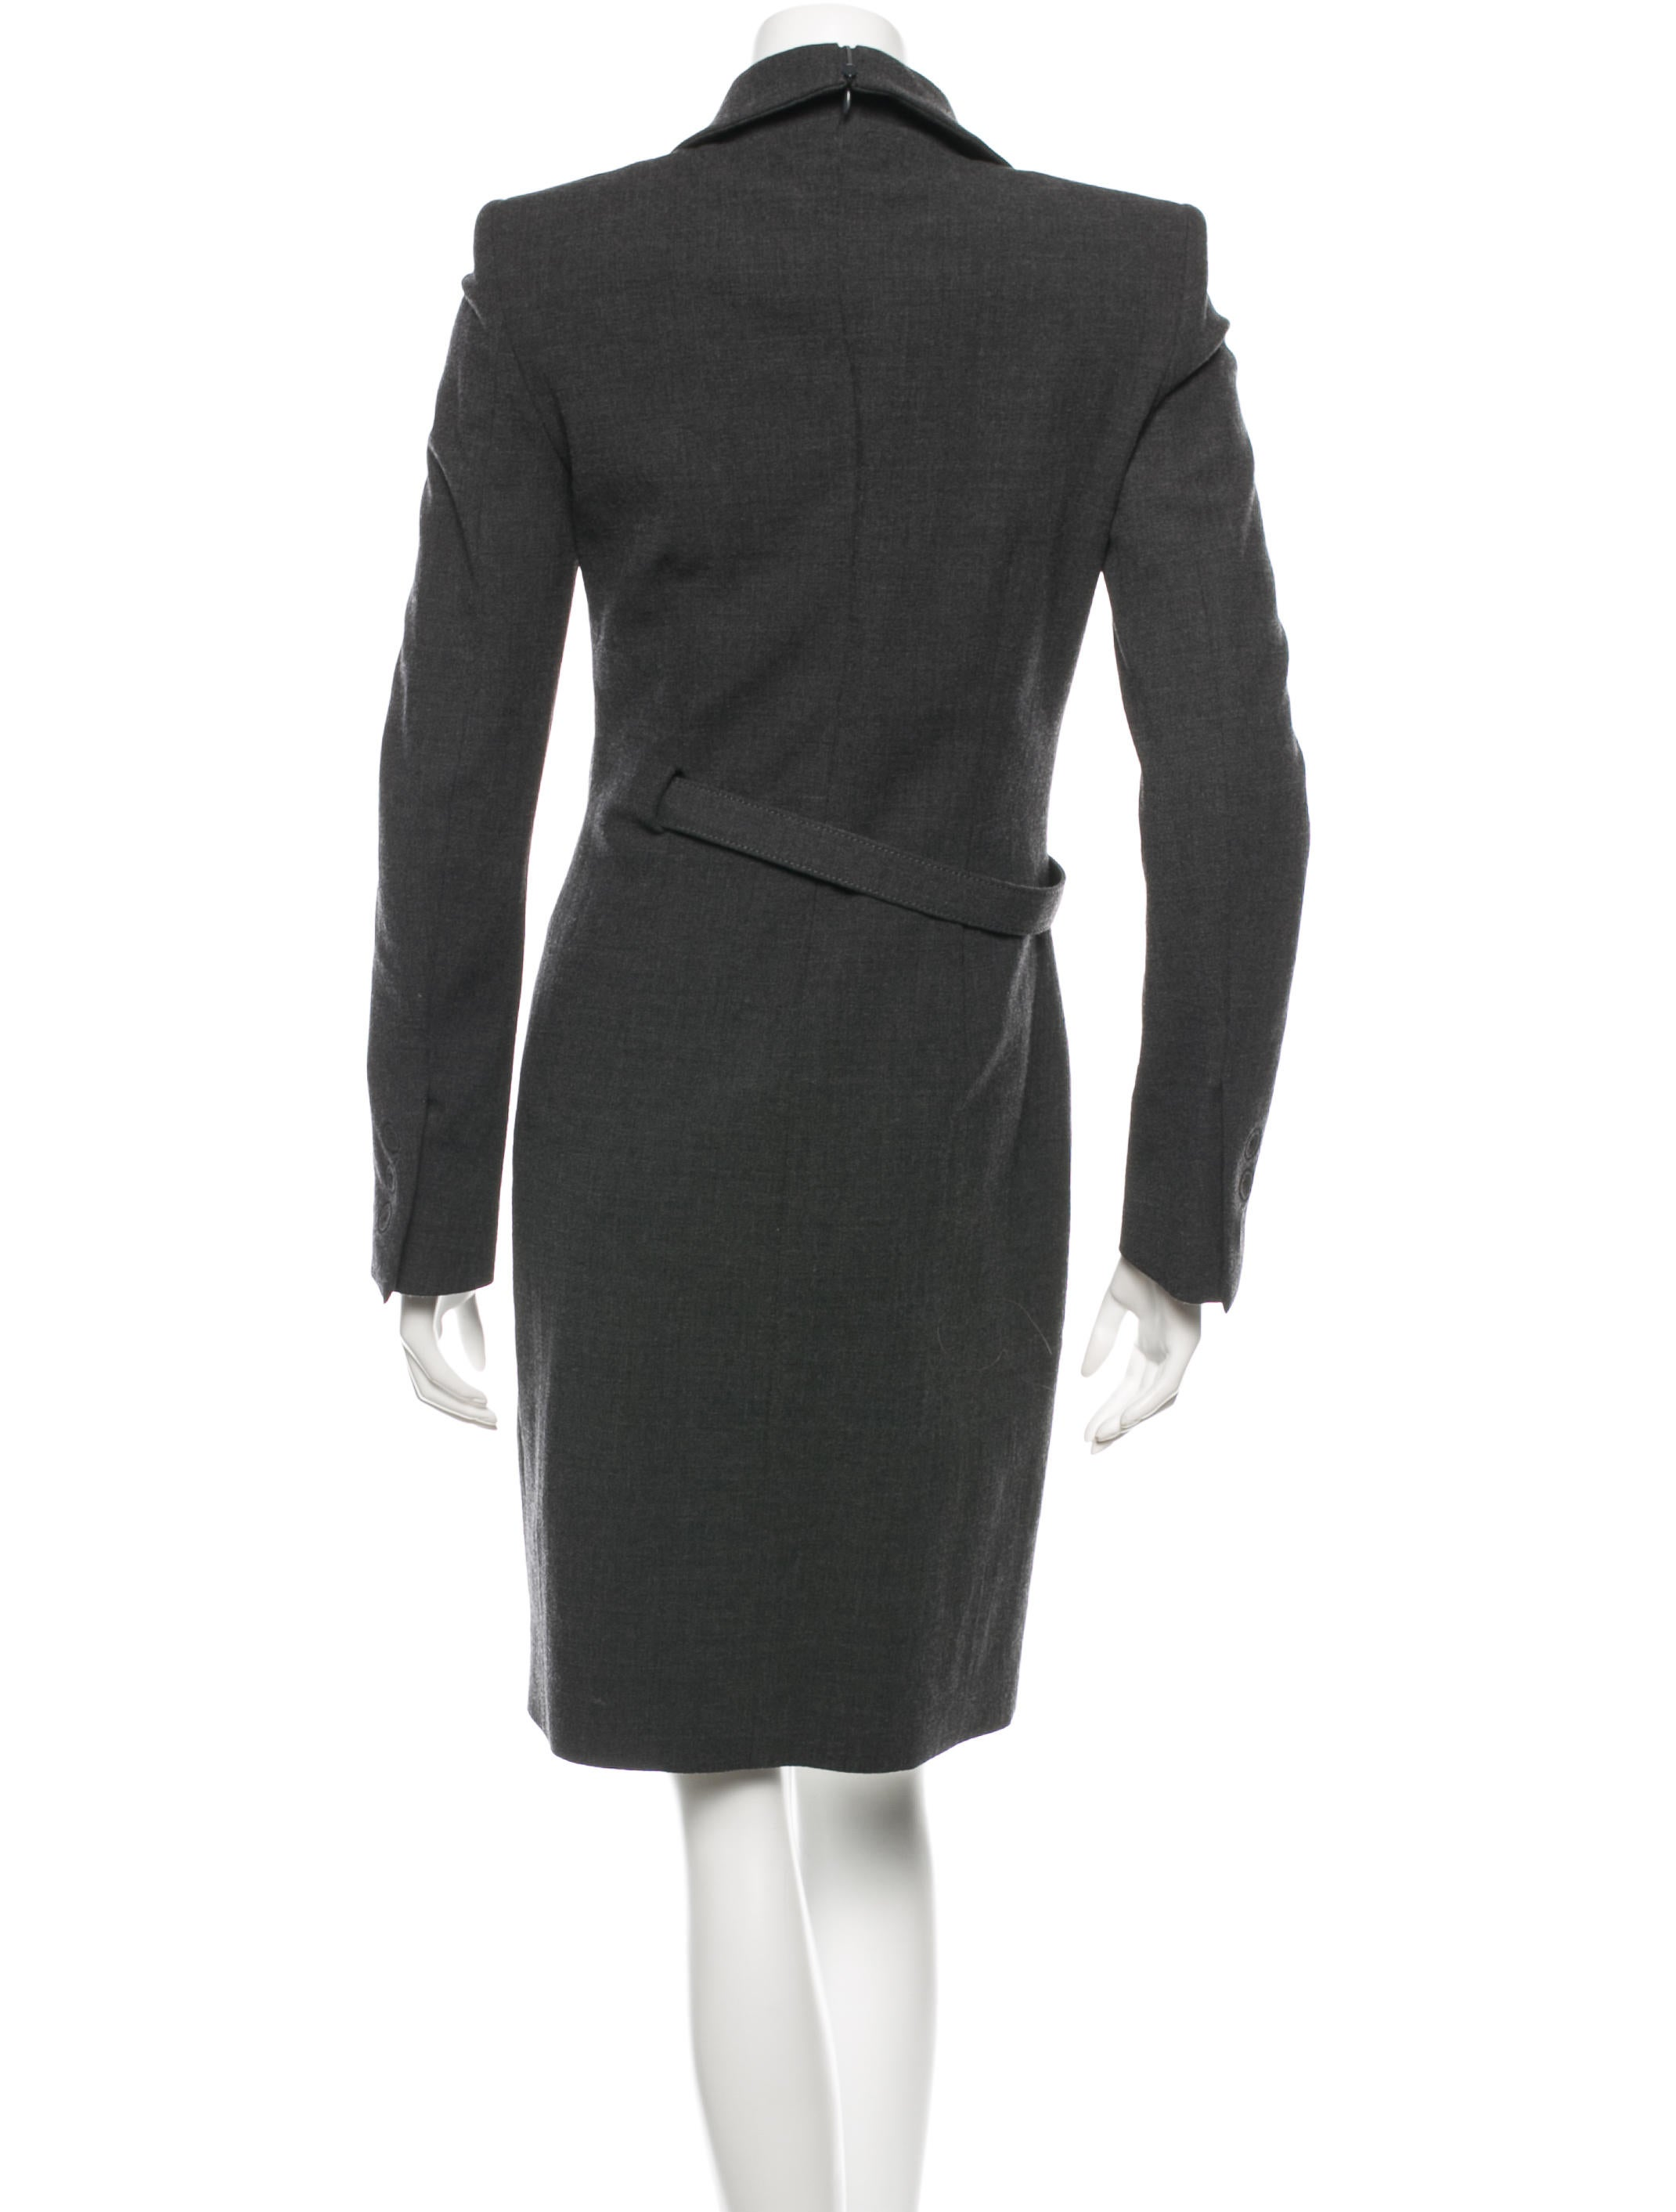 Jean paul gaultier wool coat dress clothing jea24118 for Jean paul gaultier clothing